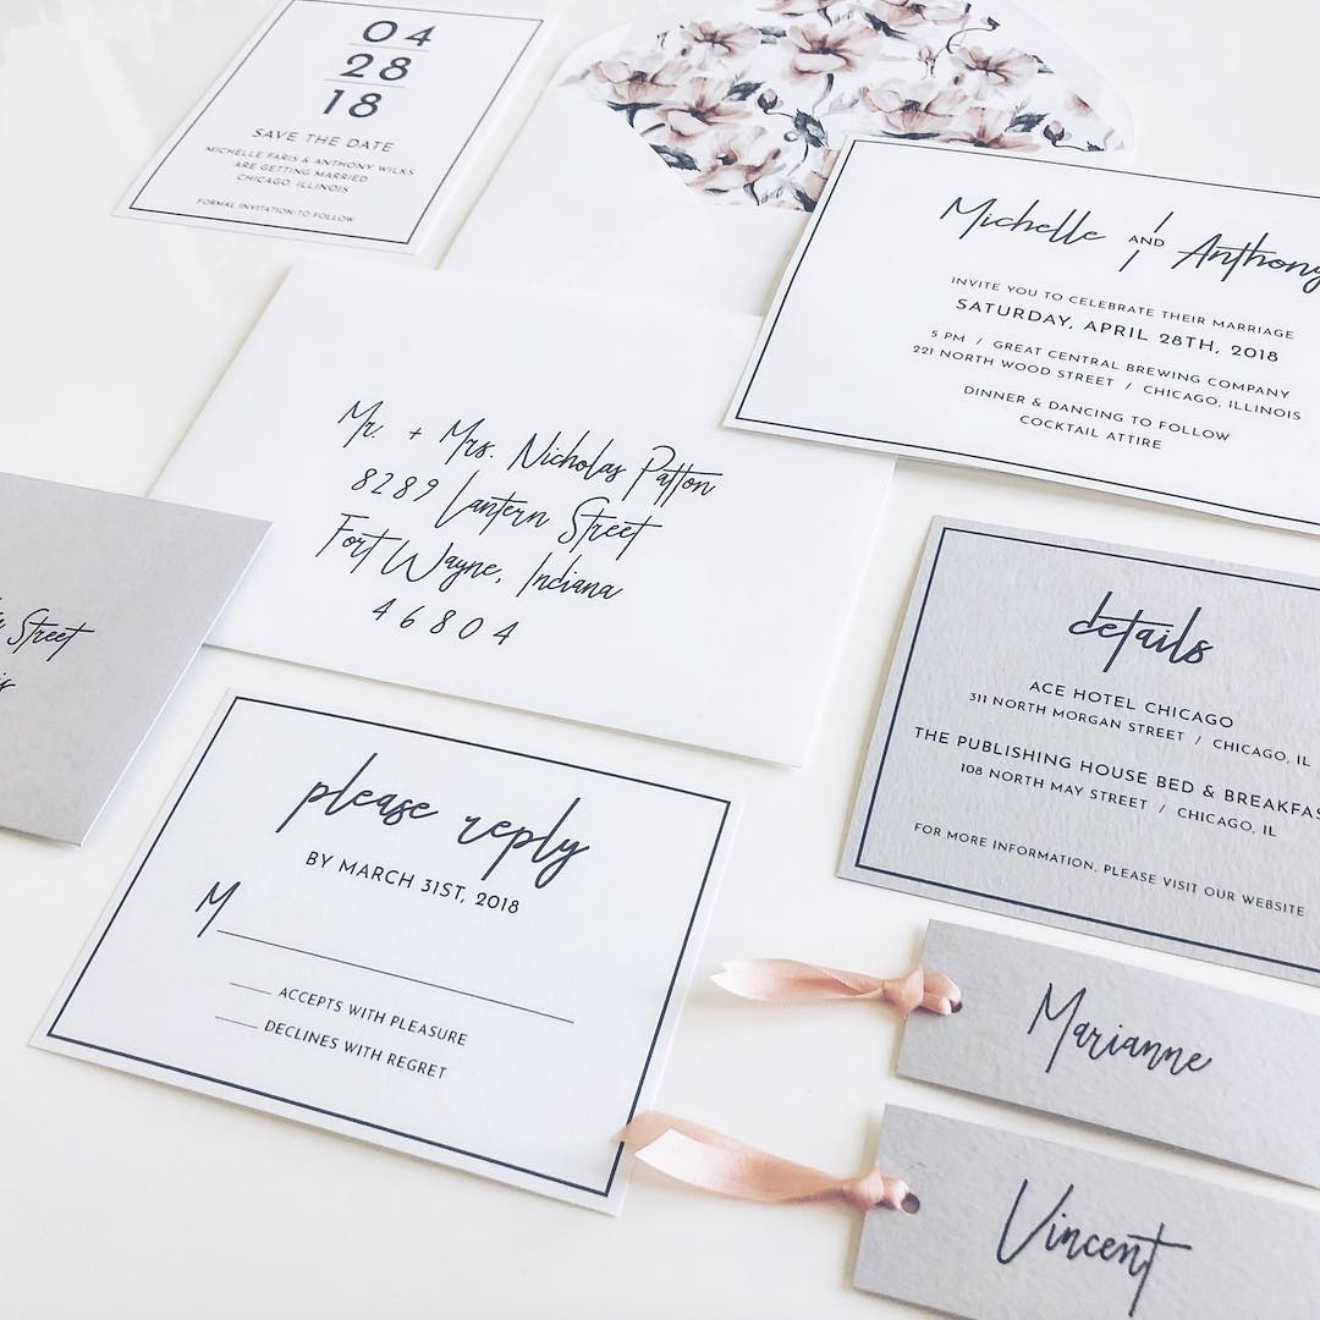 Fonts For Wedding Invites: Trending Wedding Invitation Fonts For 2018/19